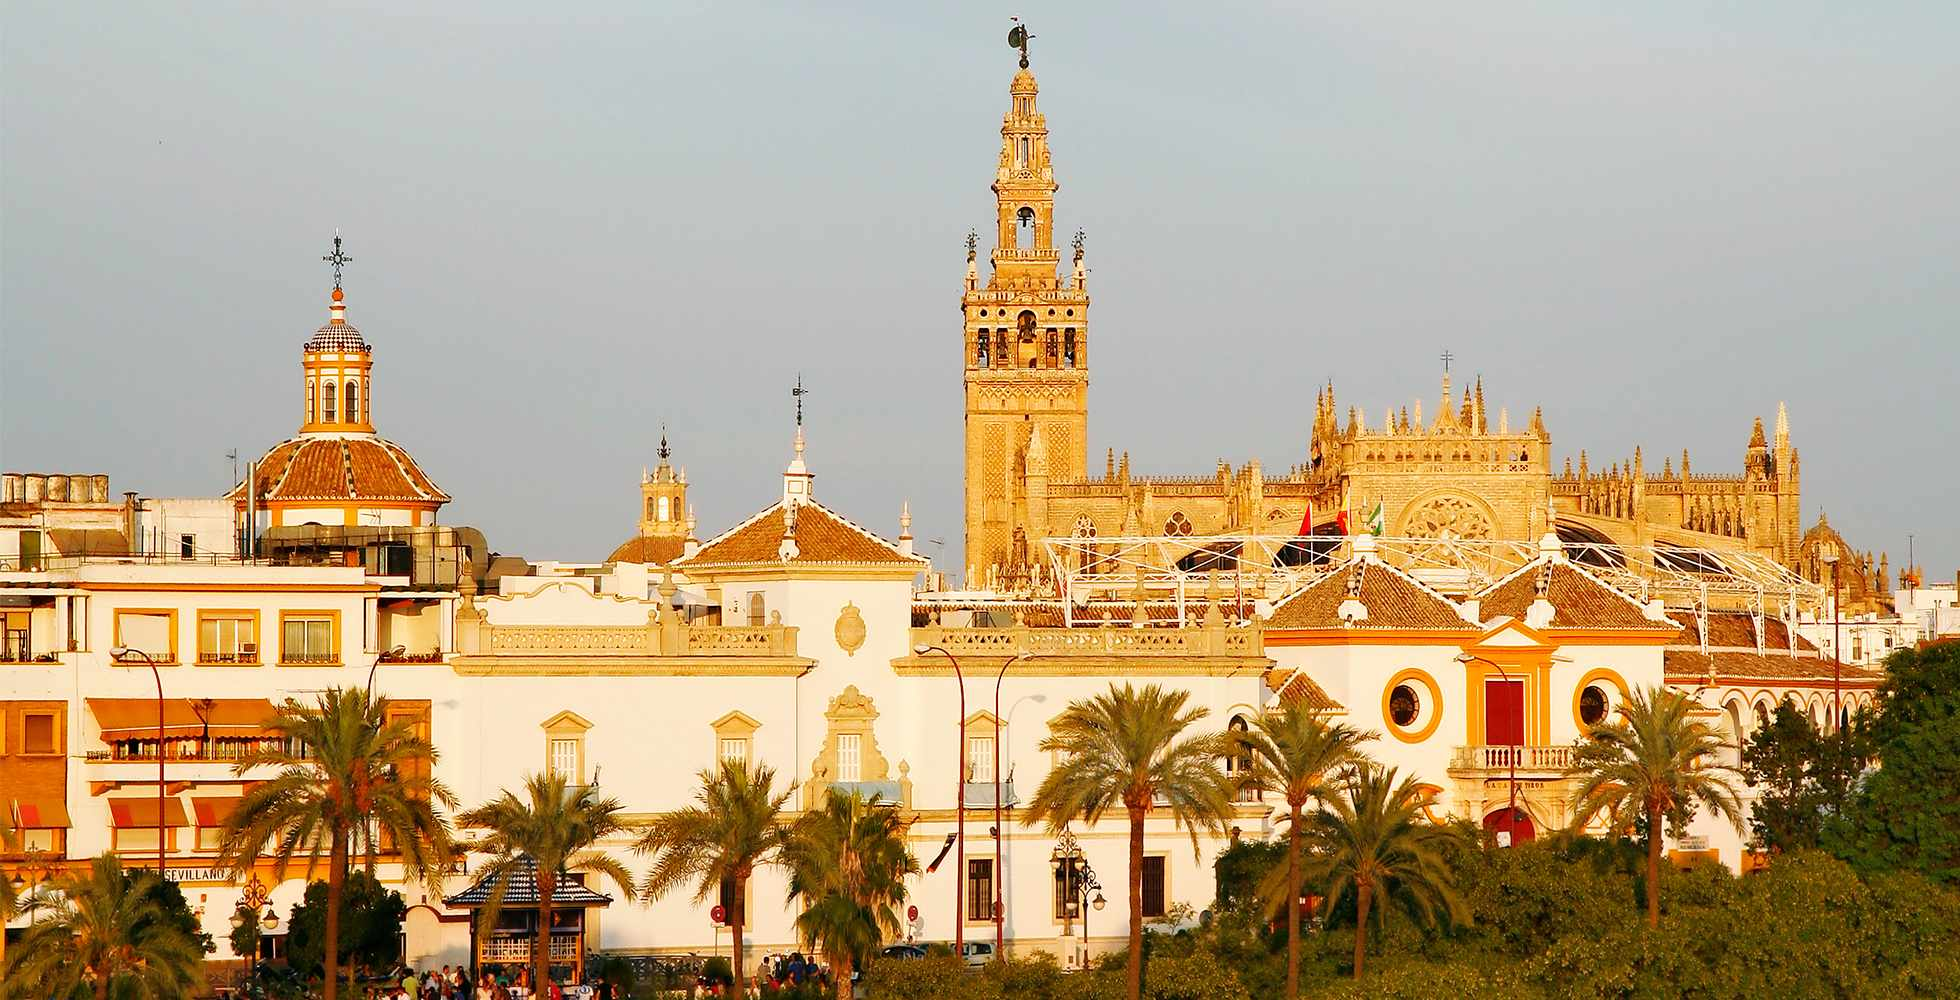 Seville, Spain Foodie Guide: Where Locals eat and Drink